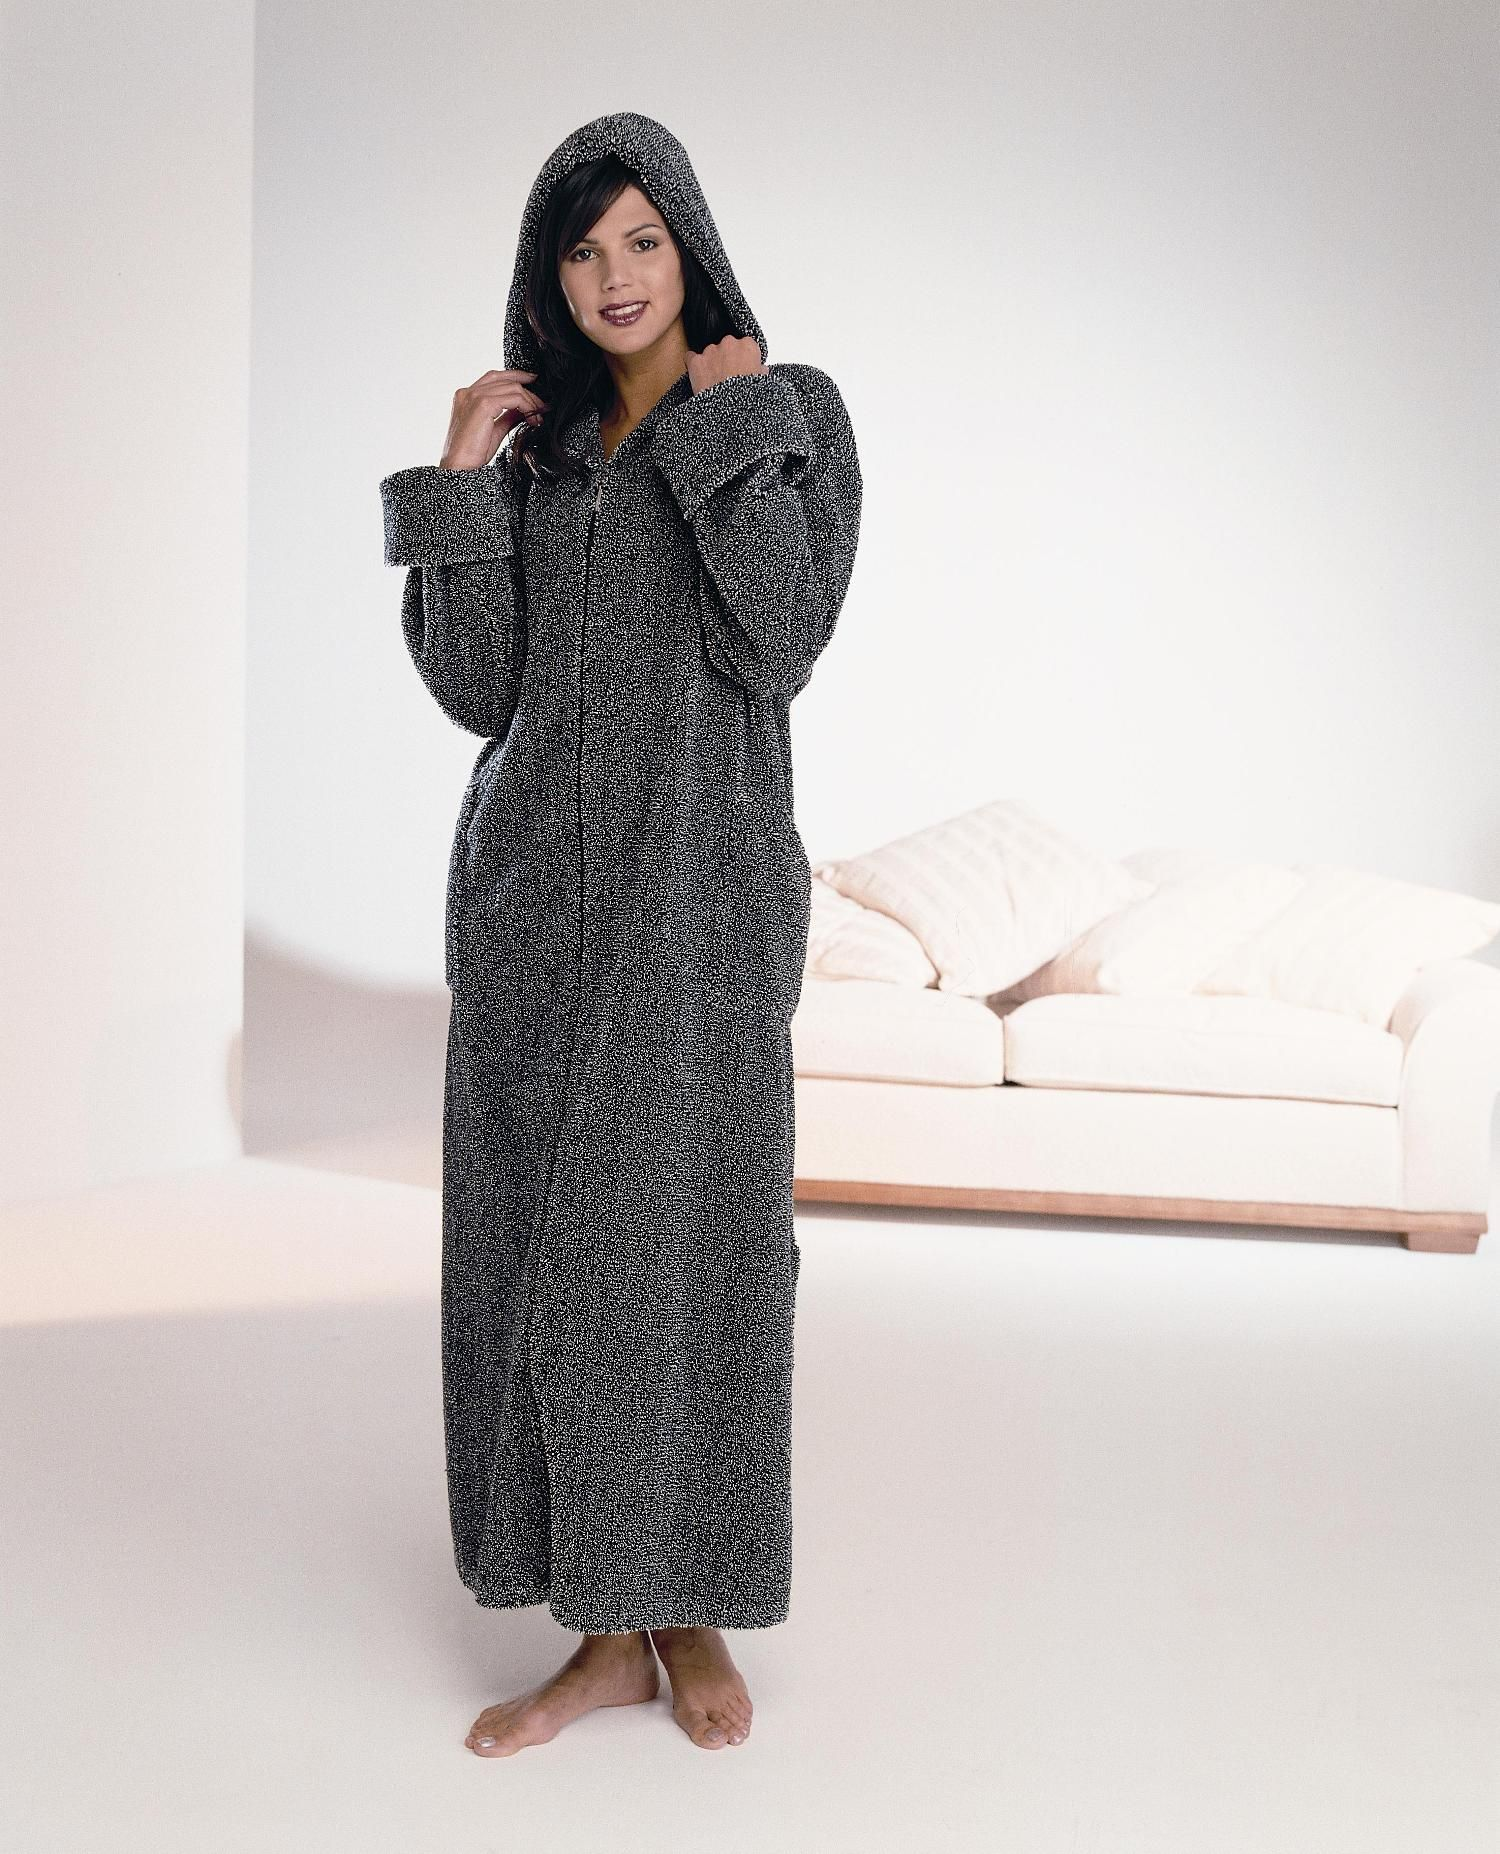 Chenille dressing gowns | Candlewick dressing gowns | Kinnaird ...